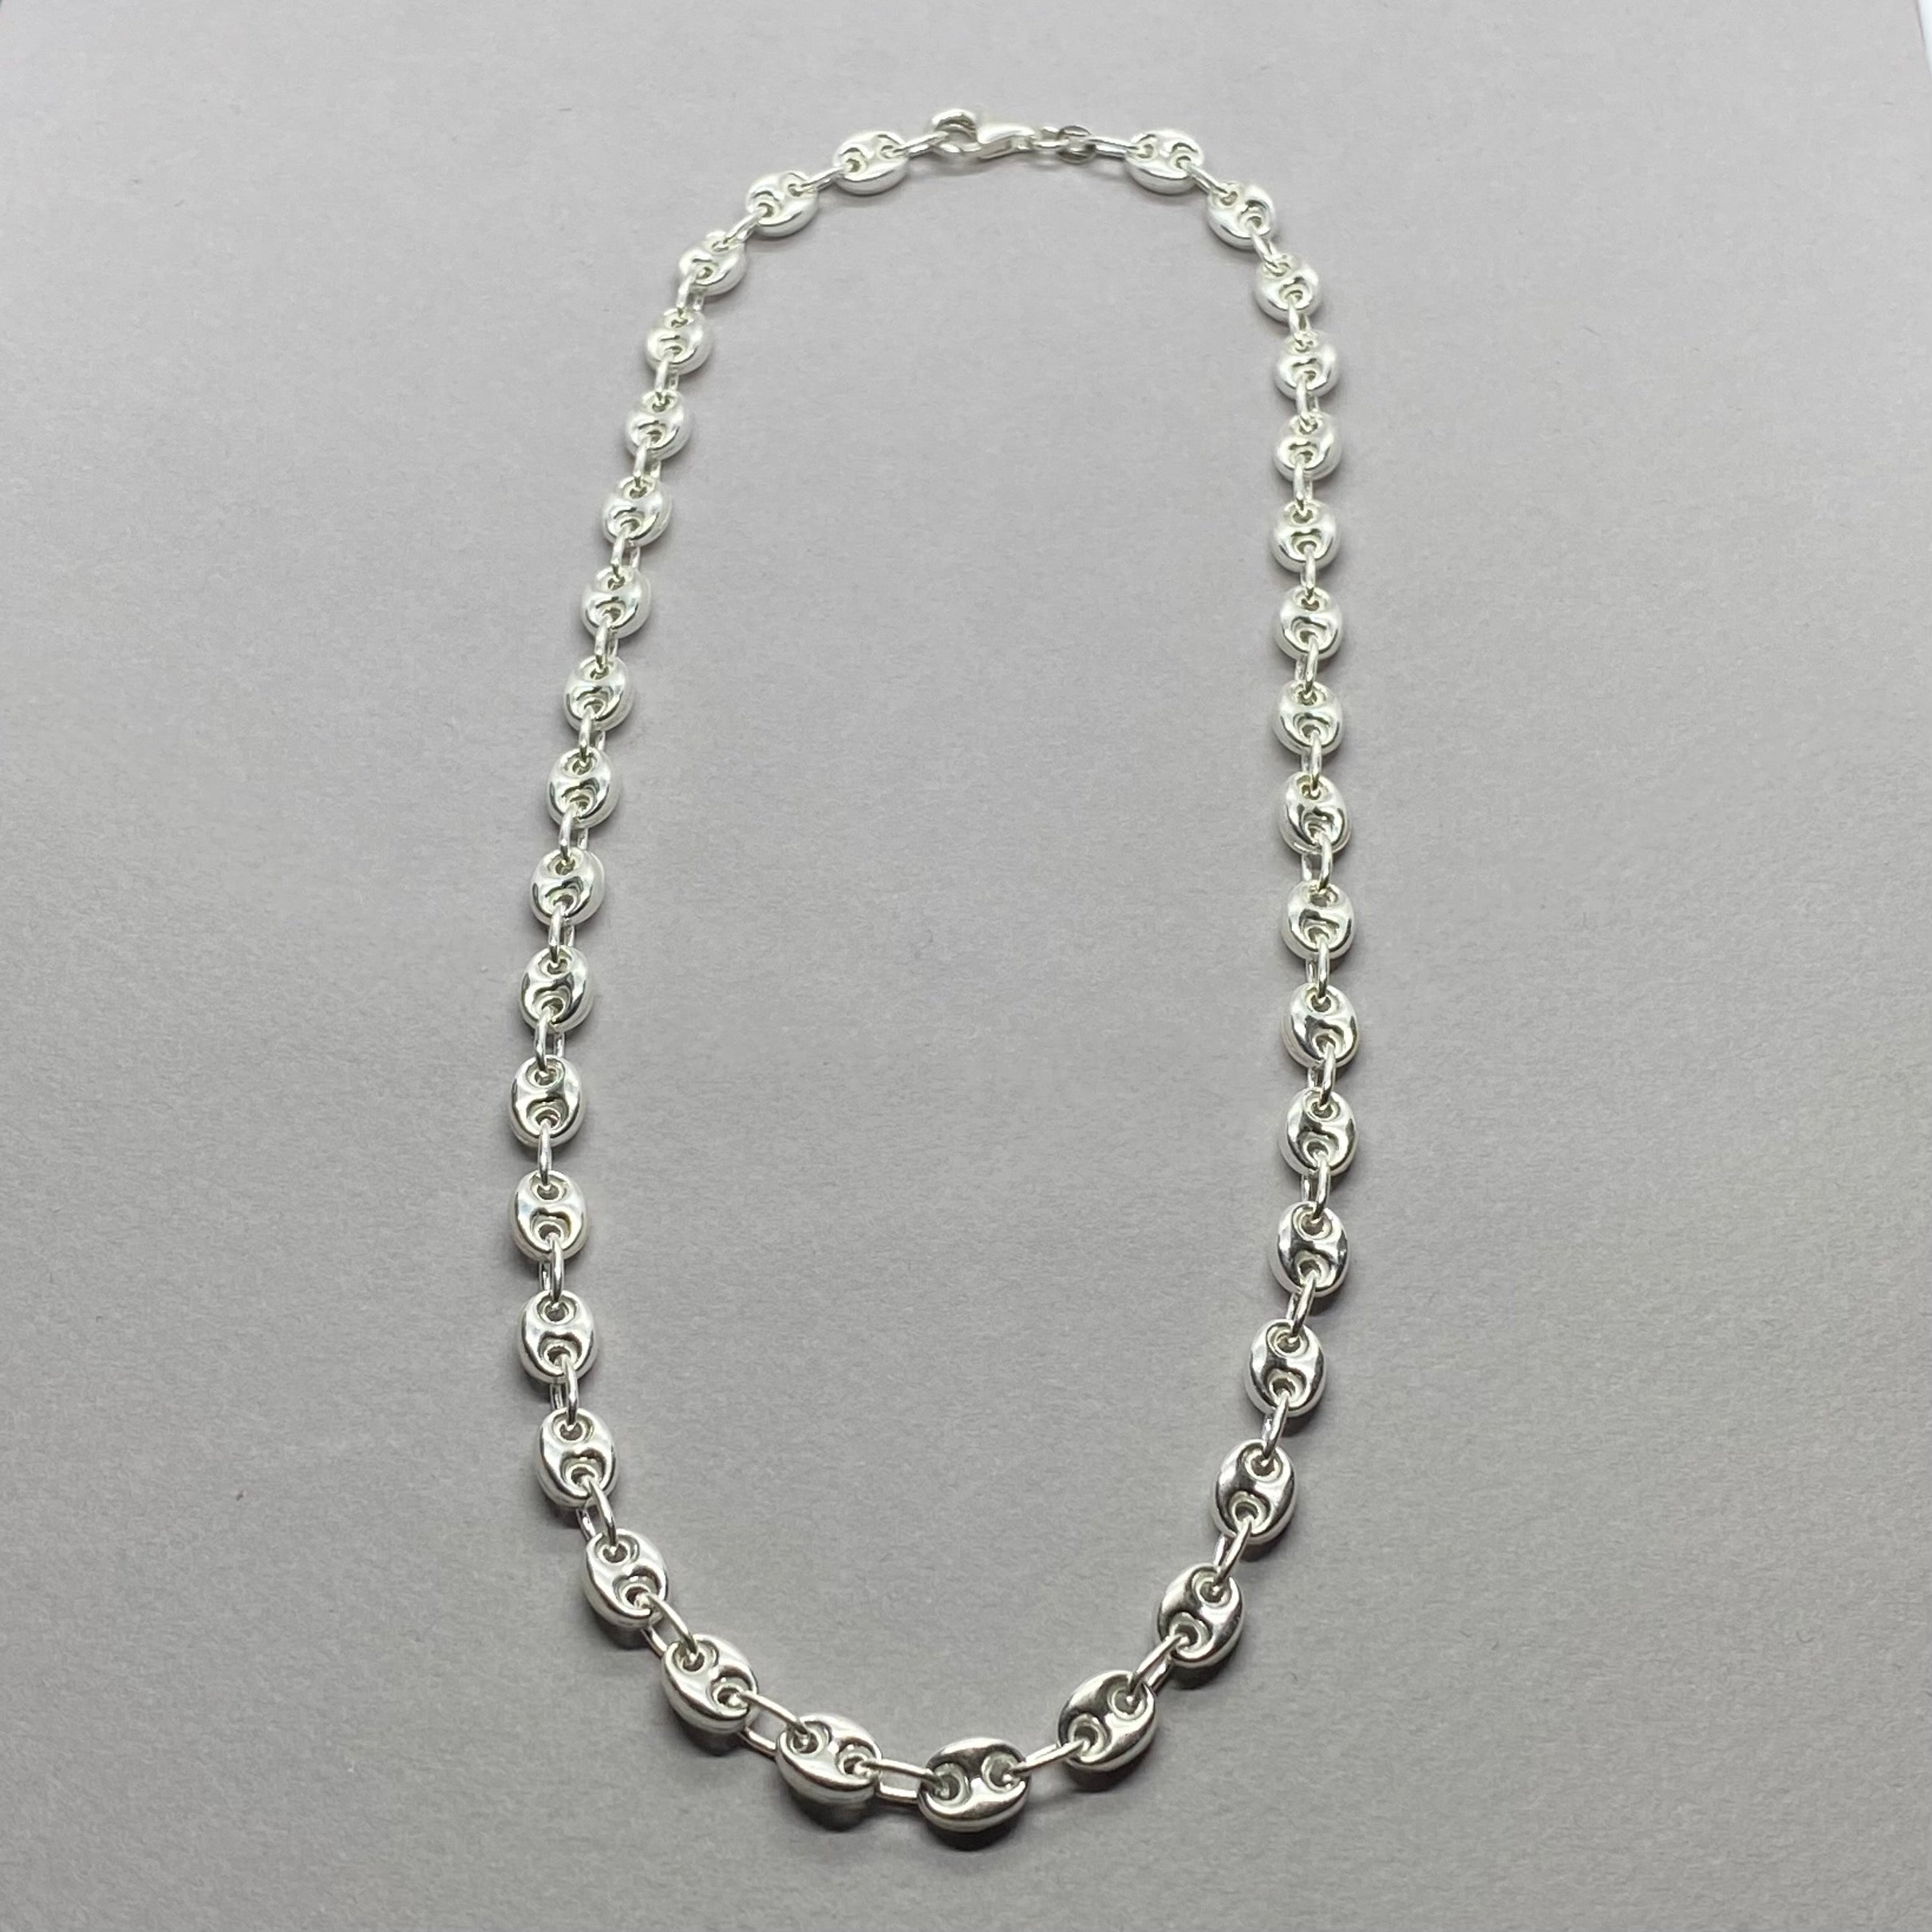 PUFF LINK CHAIN STERLING SILVER